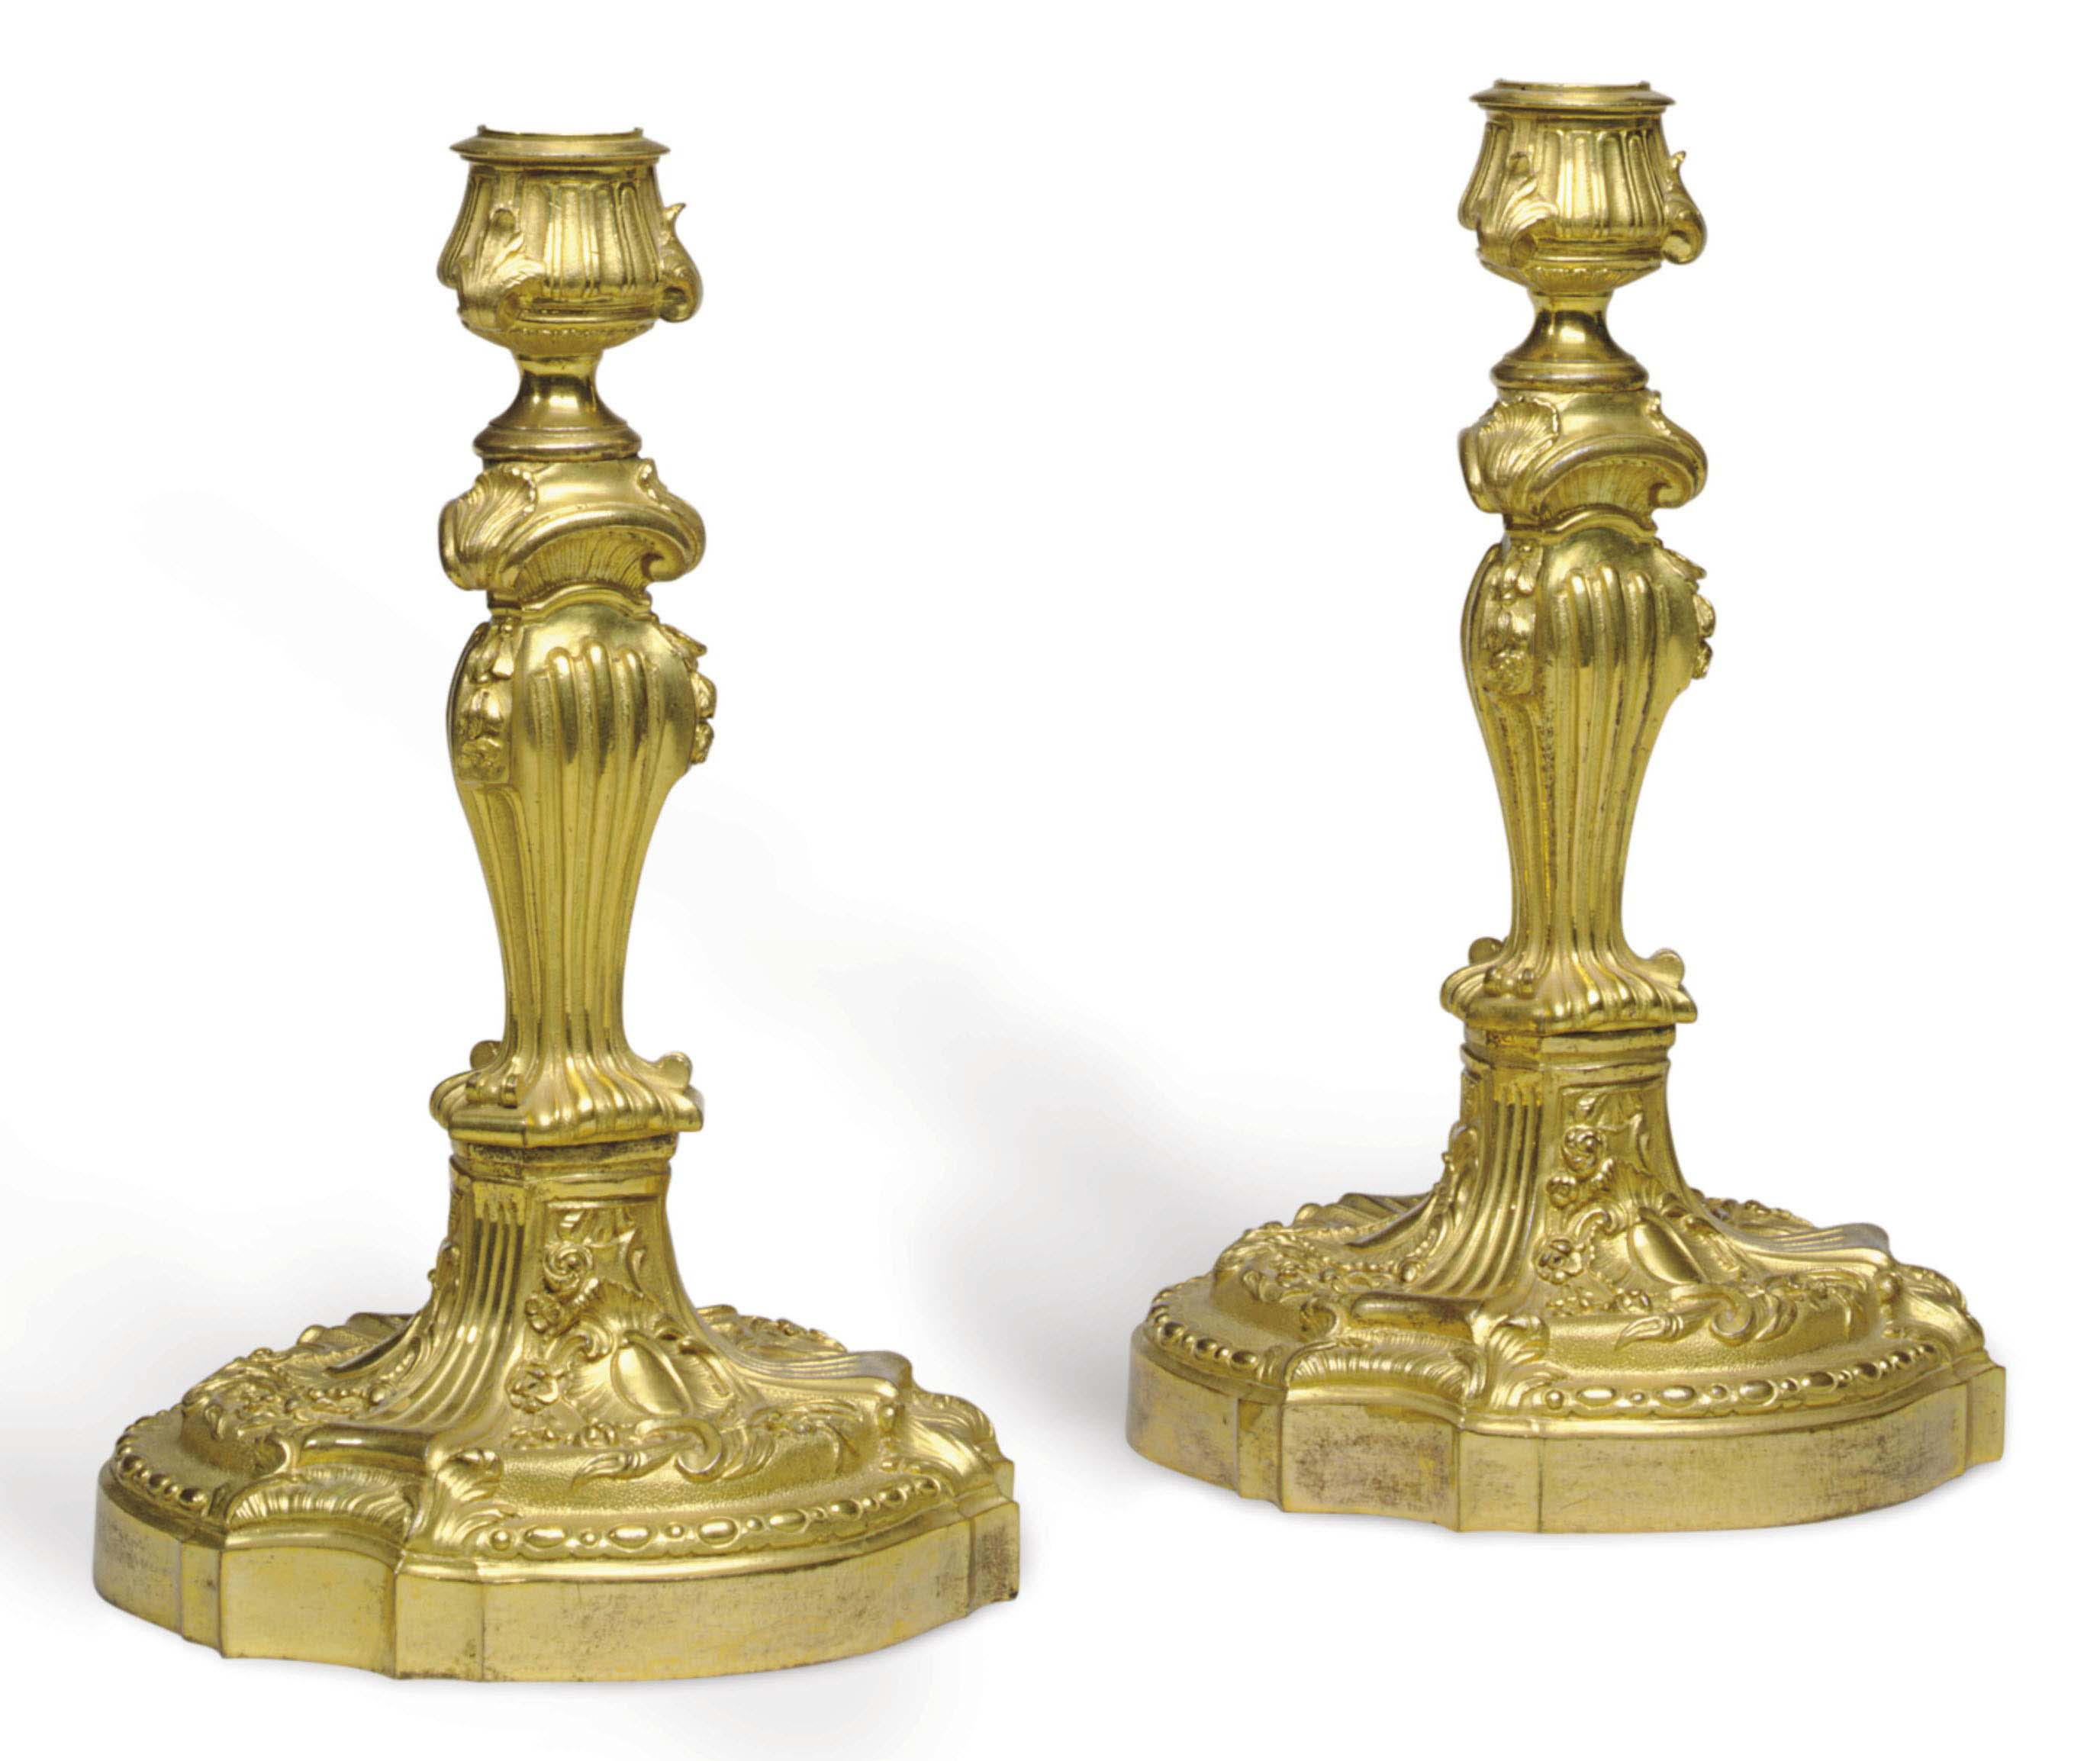 A PAIR OF FRENCH ORMOLU CANDLESTICKS MOUNTED AS LAMPS